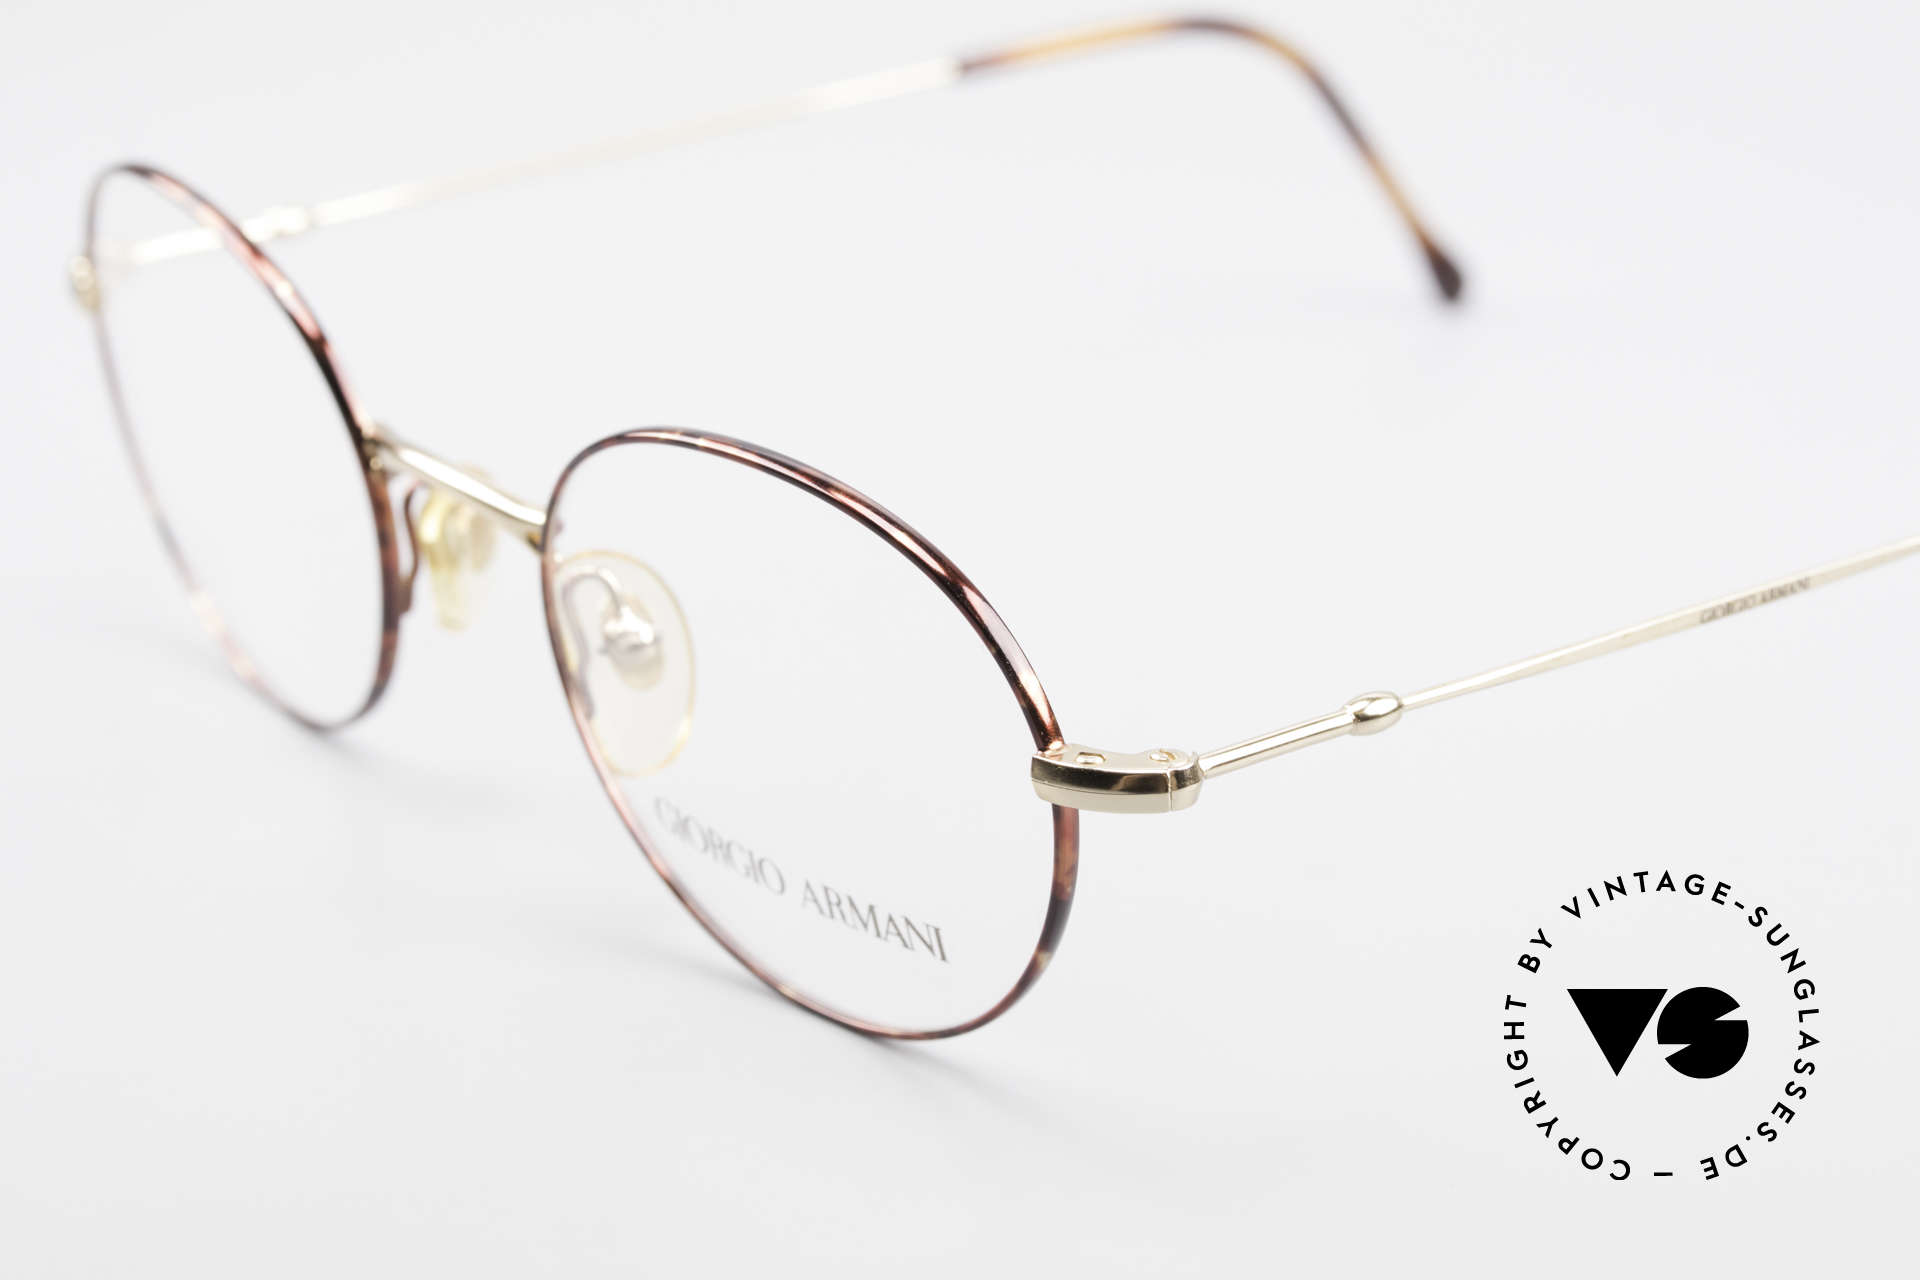 Giorgio Armani 252 Oval Vintage Eyeglasses 90's, never worn (like all our 1990's designer classics), Made for Men and Women